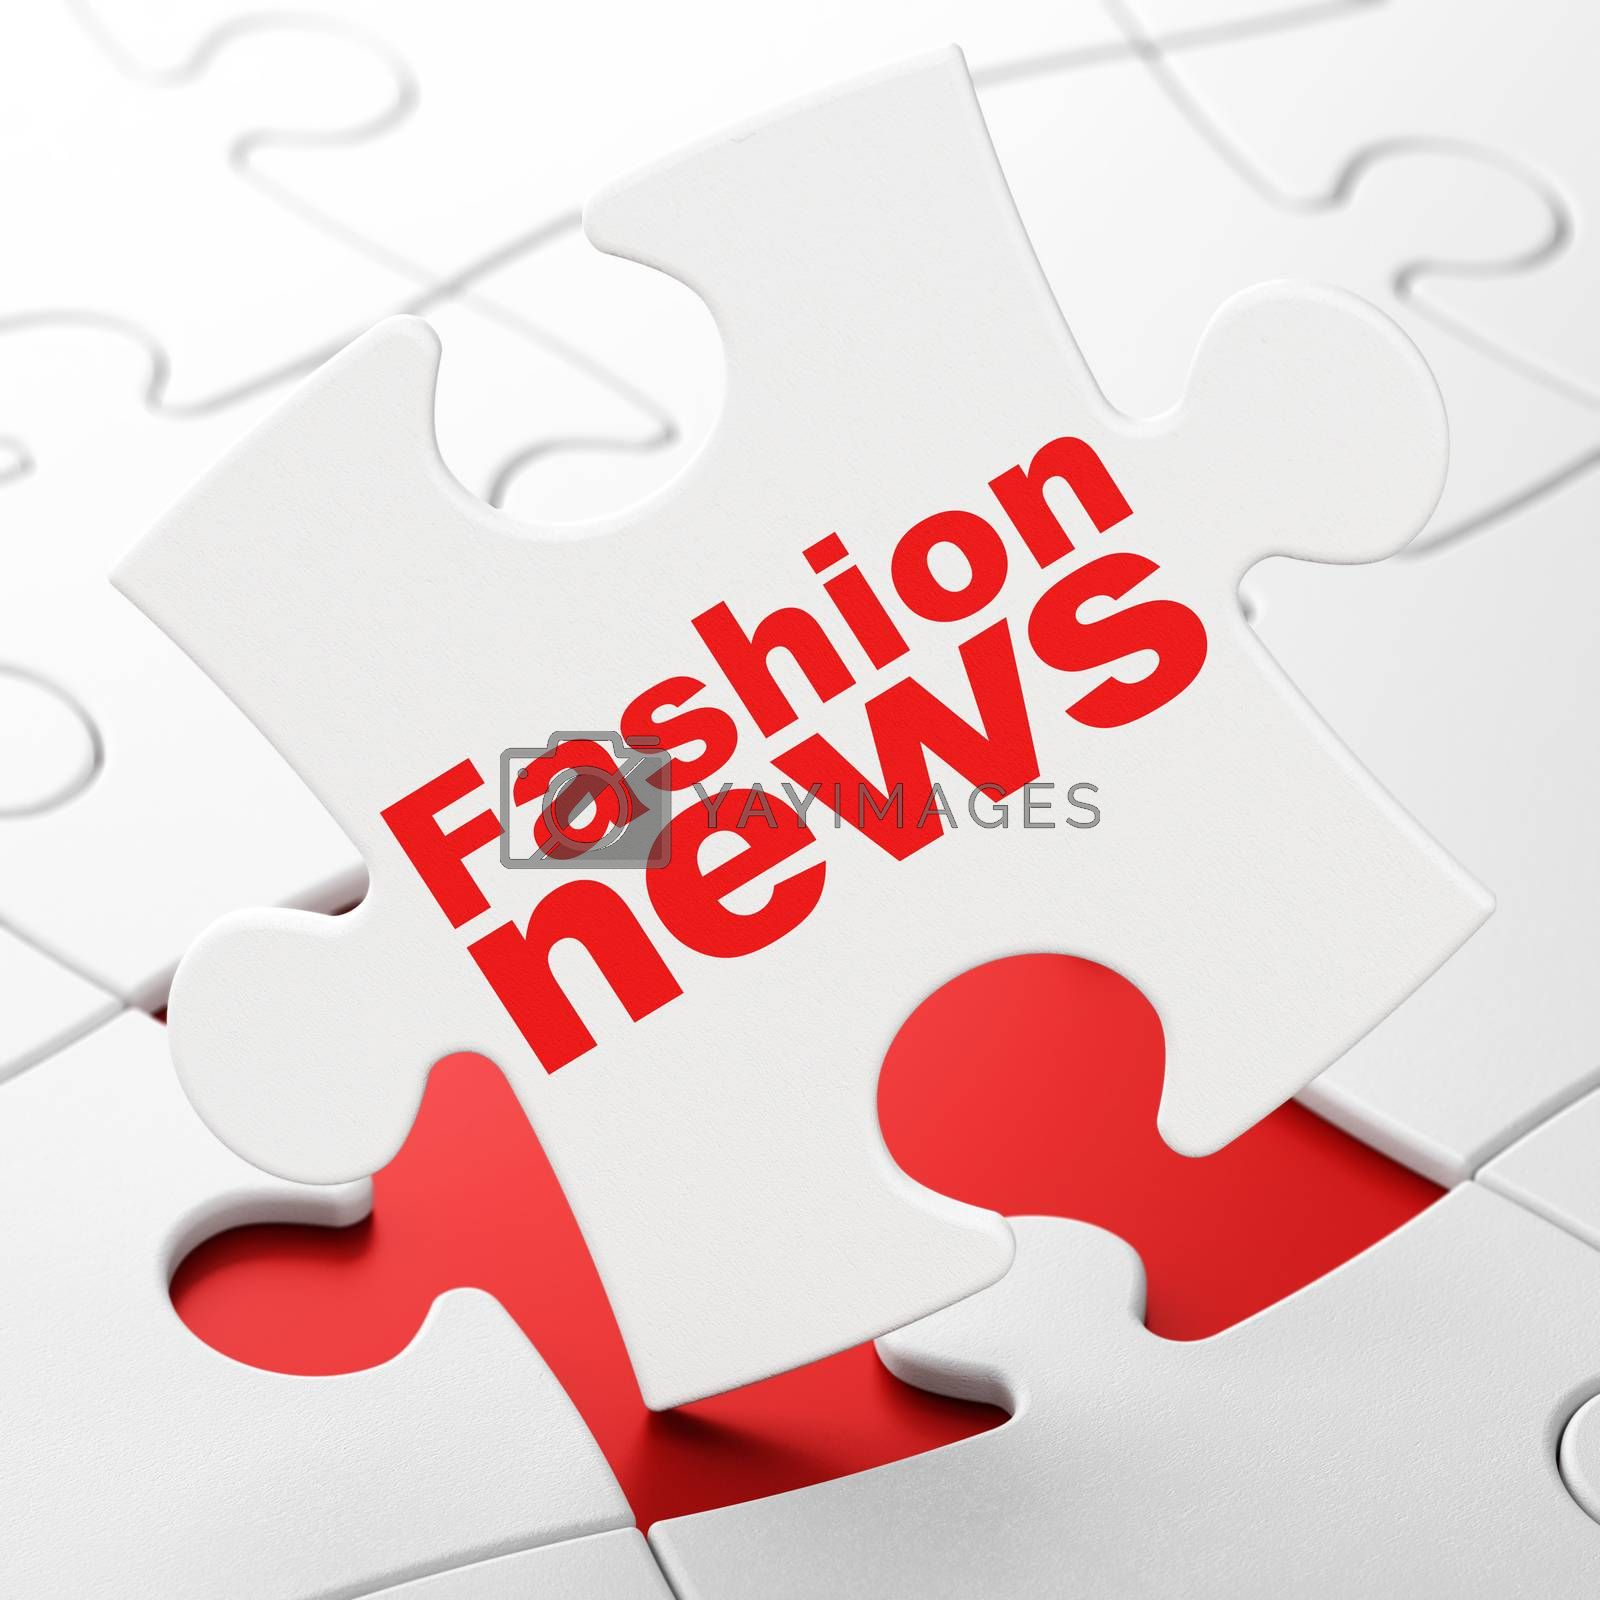 News concept: Fashion News on White puzzle pieces background, 3D rendering